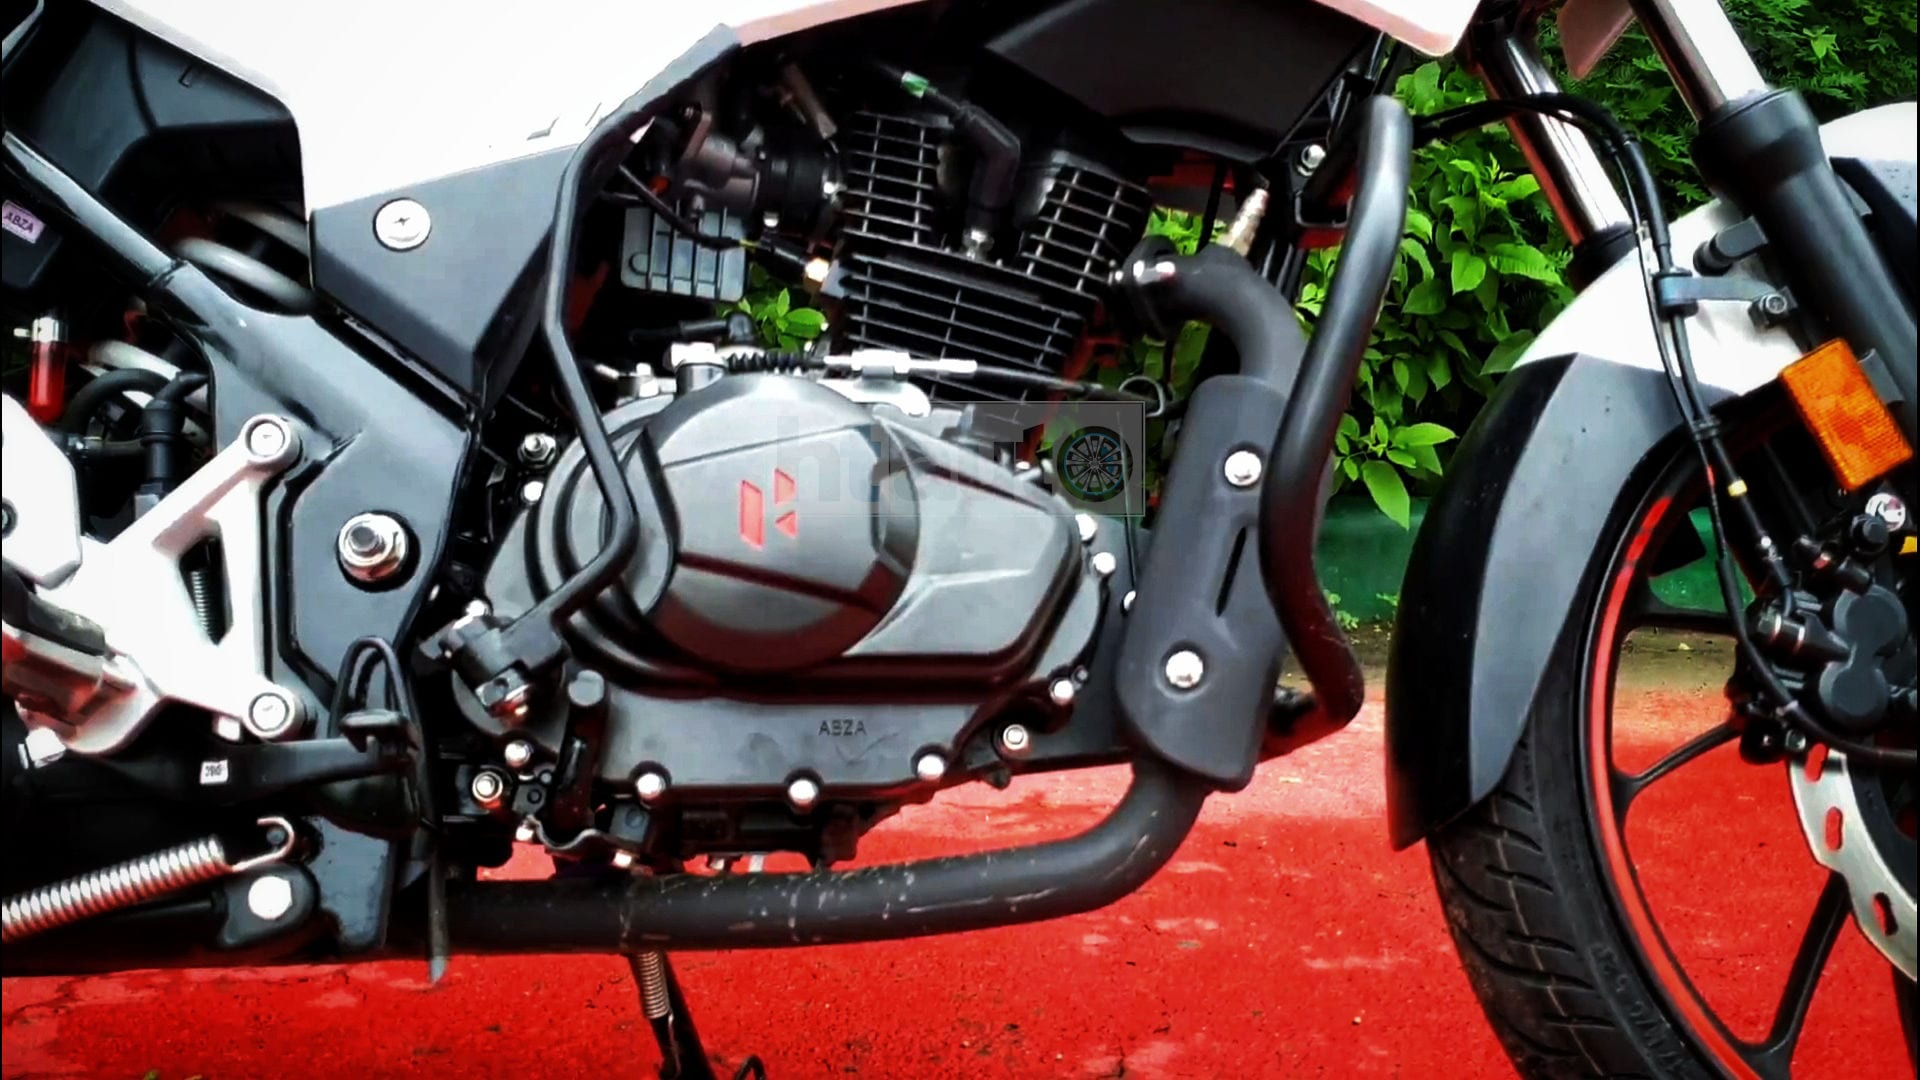 The Xtreme 160R gets a BS 6-compliant 160 cc air-cooled engine which delivers 15 PS/14 Nm and comes mated to a 5-speed gearbox. The clutch action feels fairly light and the powertrain is as smooth and refined as seen on other Hero bikes. Picture Courtesy: Sabyasachi Dasgupta